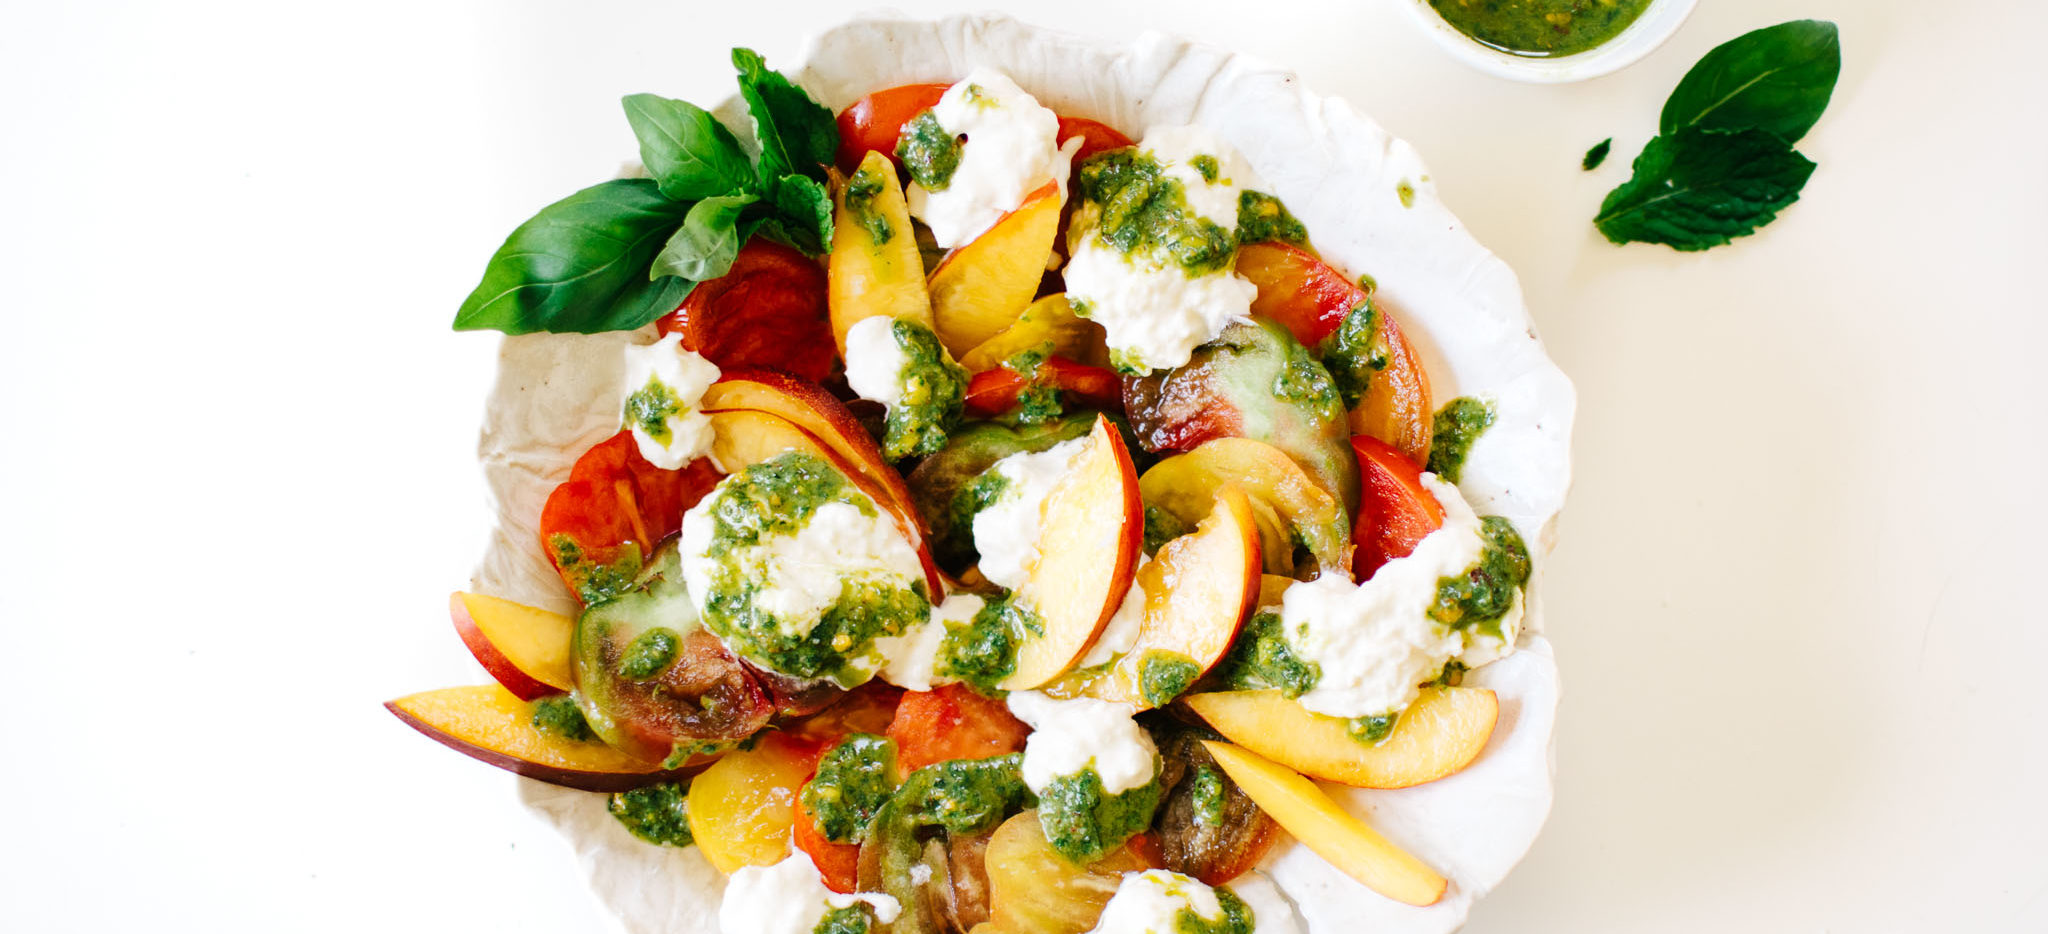 HEIRLOOM TOMATO, NECTARINE & BURRATA CAPRESE SALAD WITH PISTACHIO PESTO.